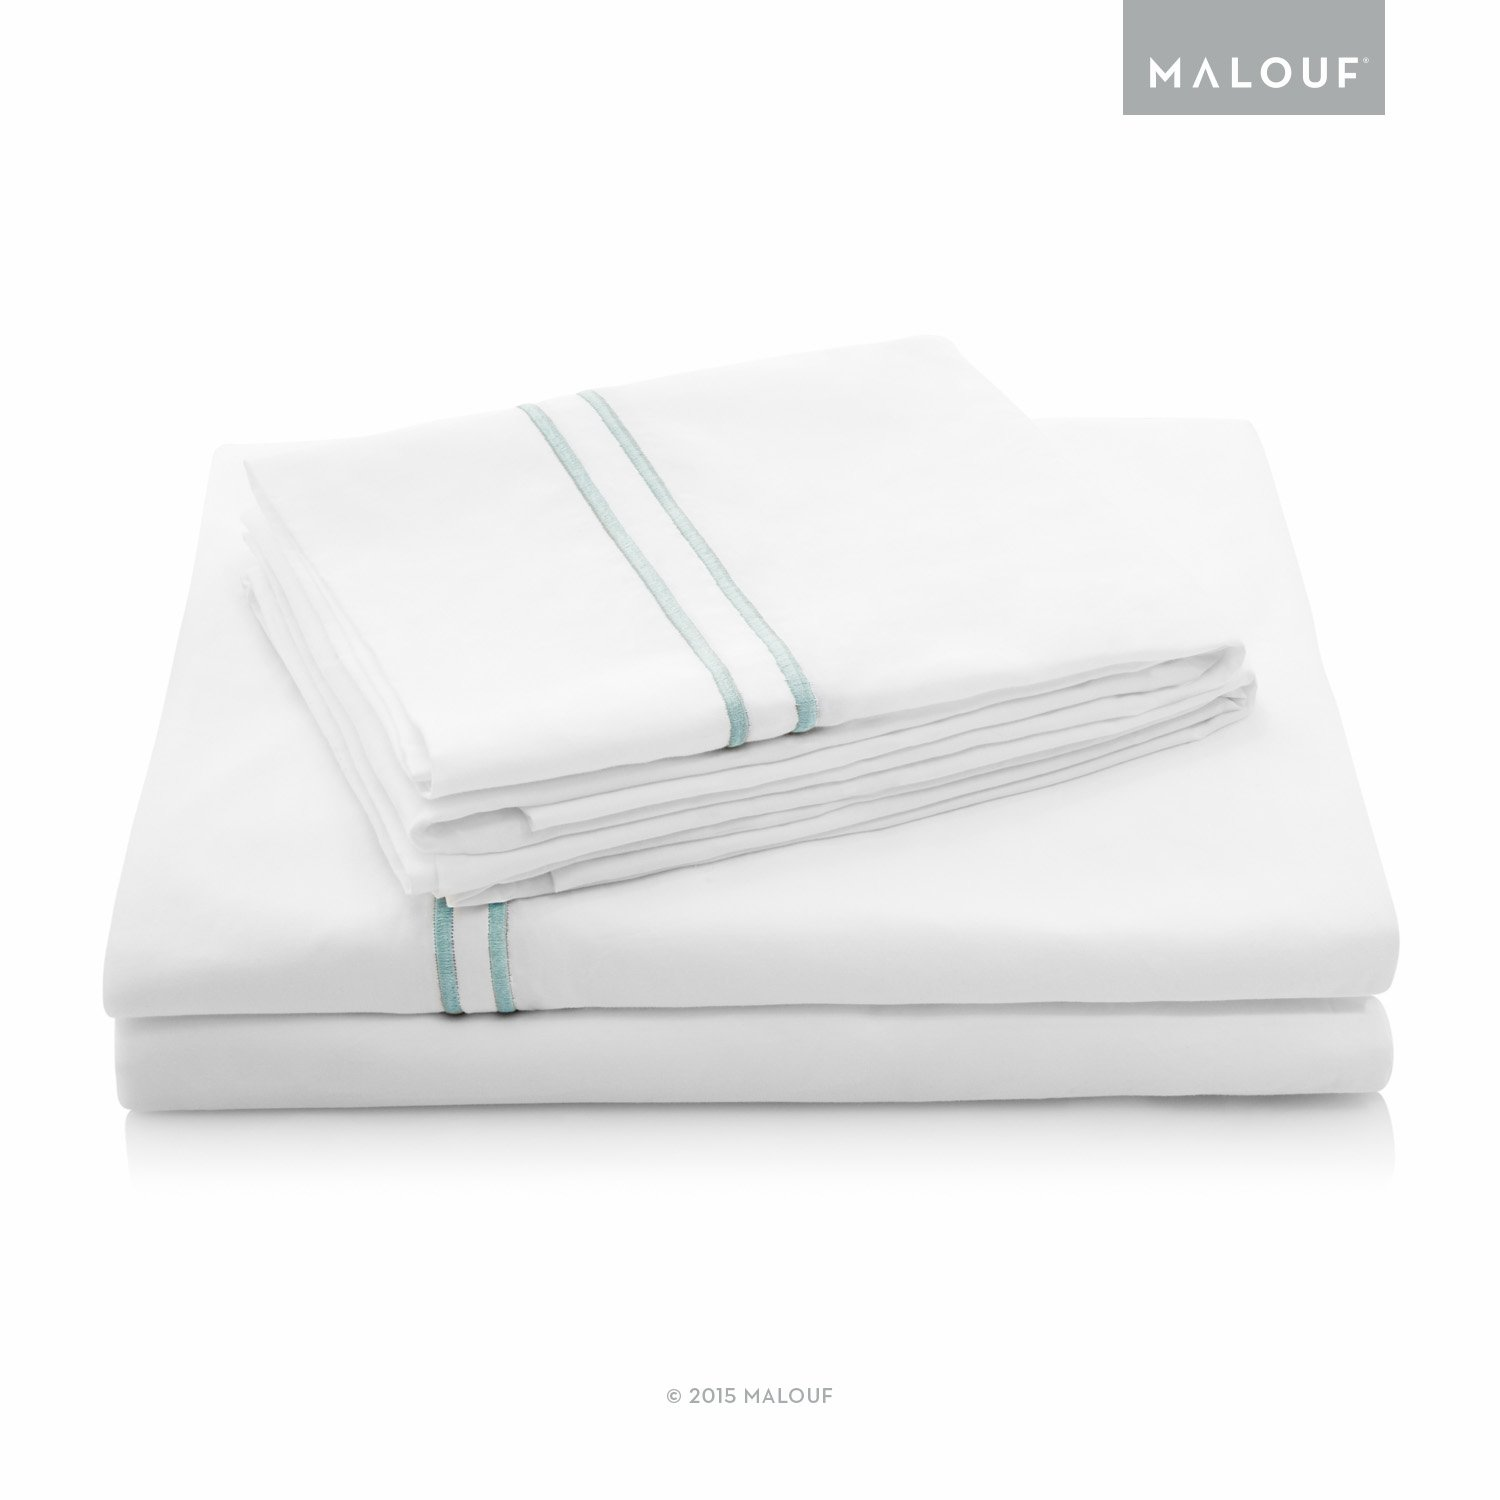 MALOUF 200 Thread Count Percale Hotel Bed Sheet Set